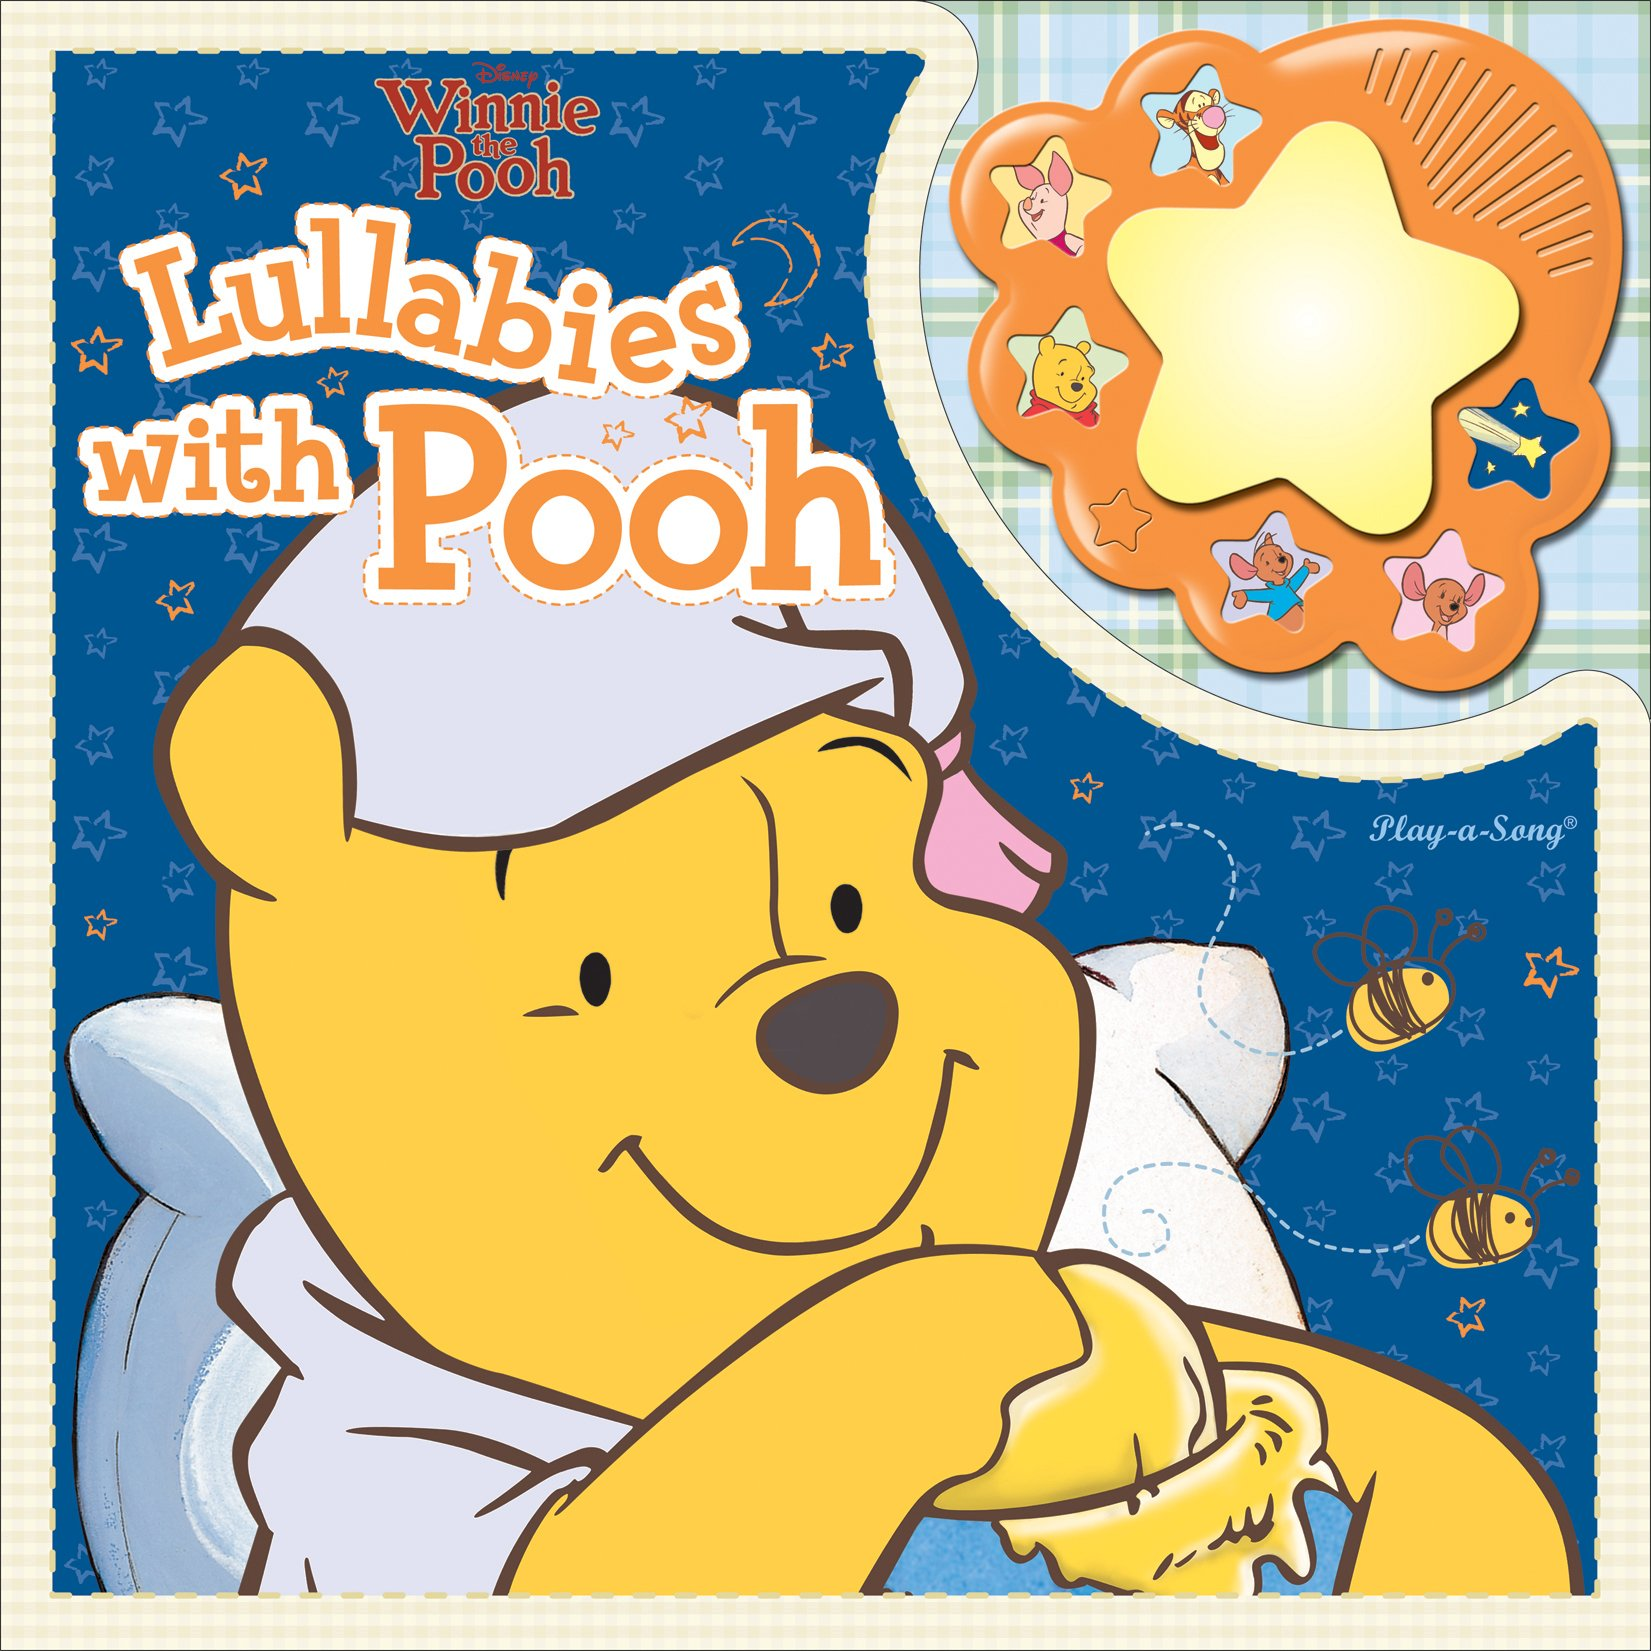 0bf6a83be18d5 Winnie the Pooh  Lullabies with Pooh (Nightlight Songs Book) Board book –  January 15